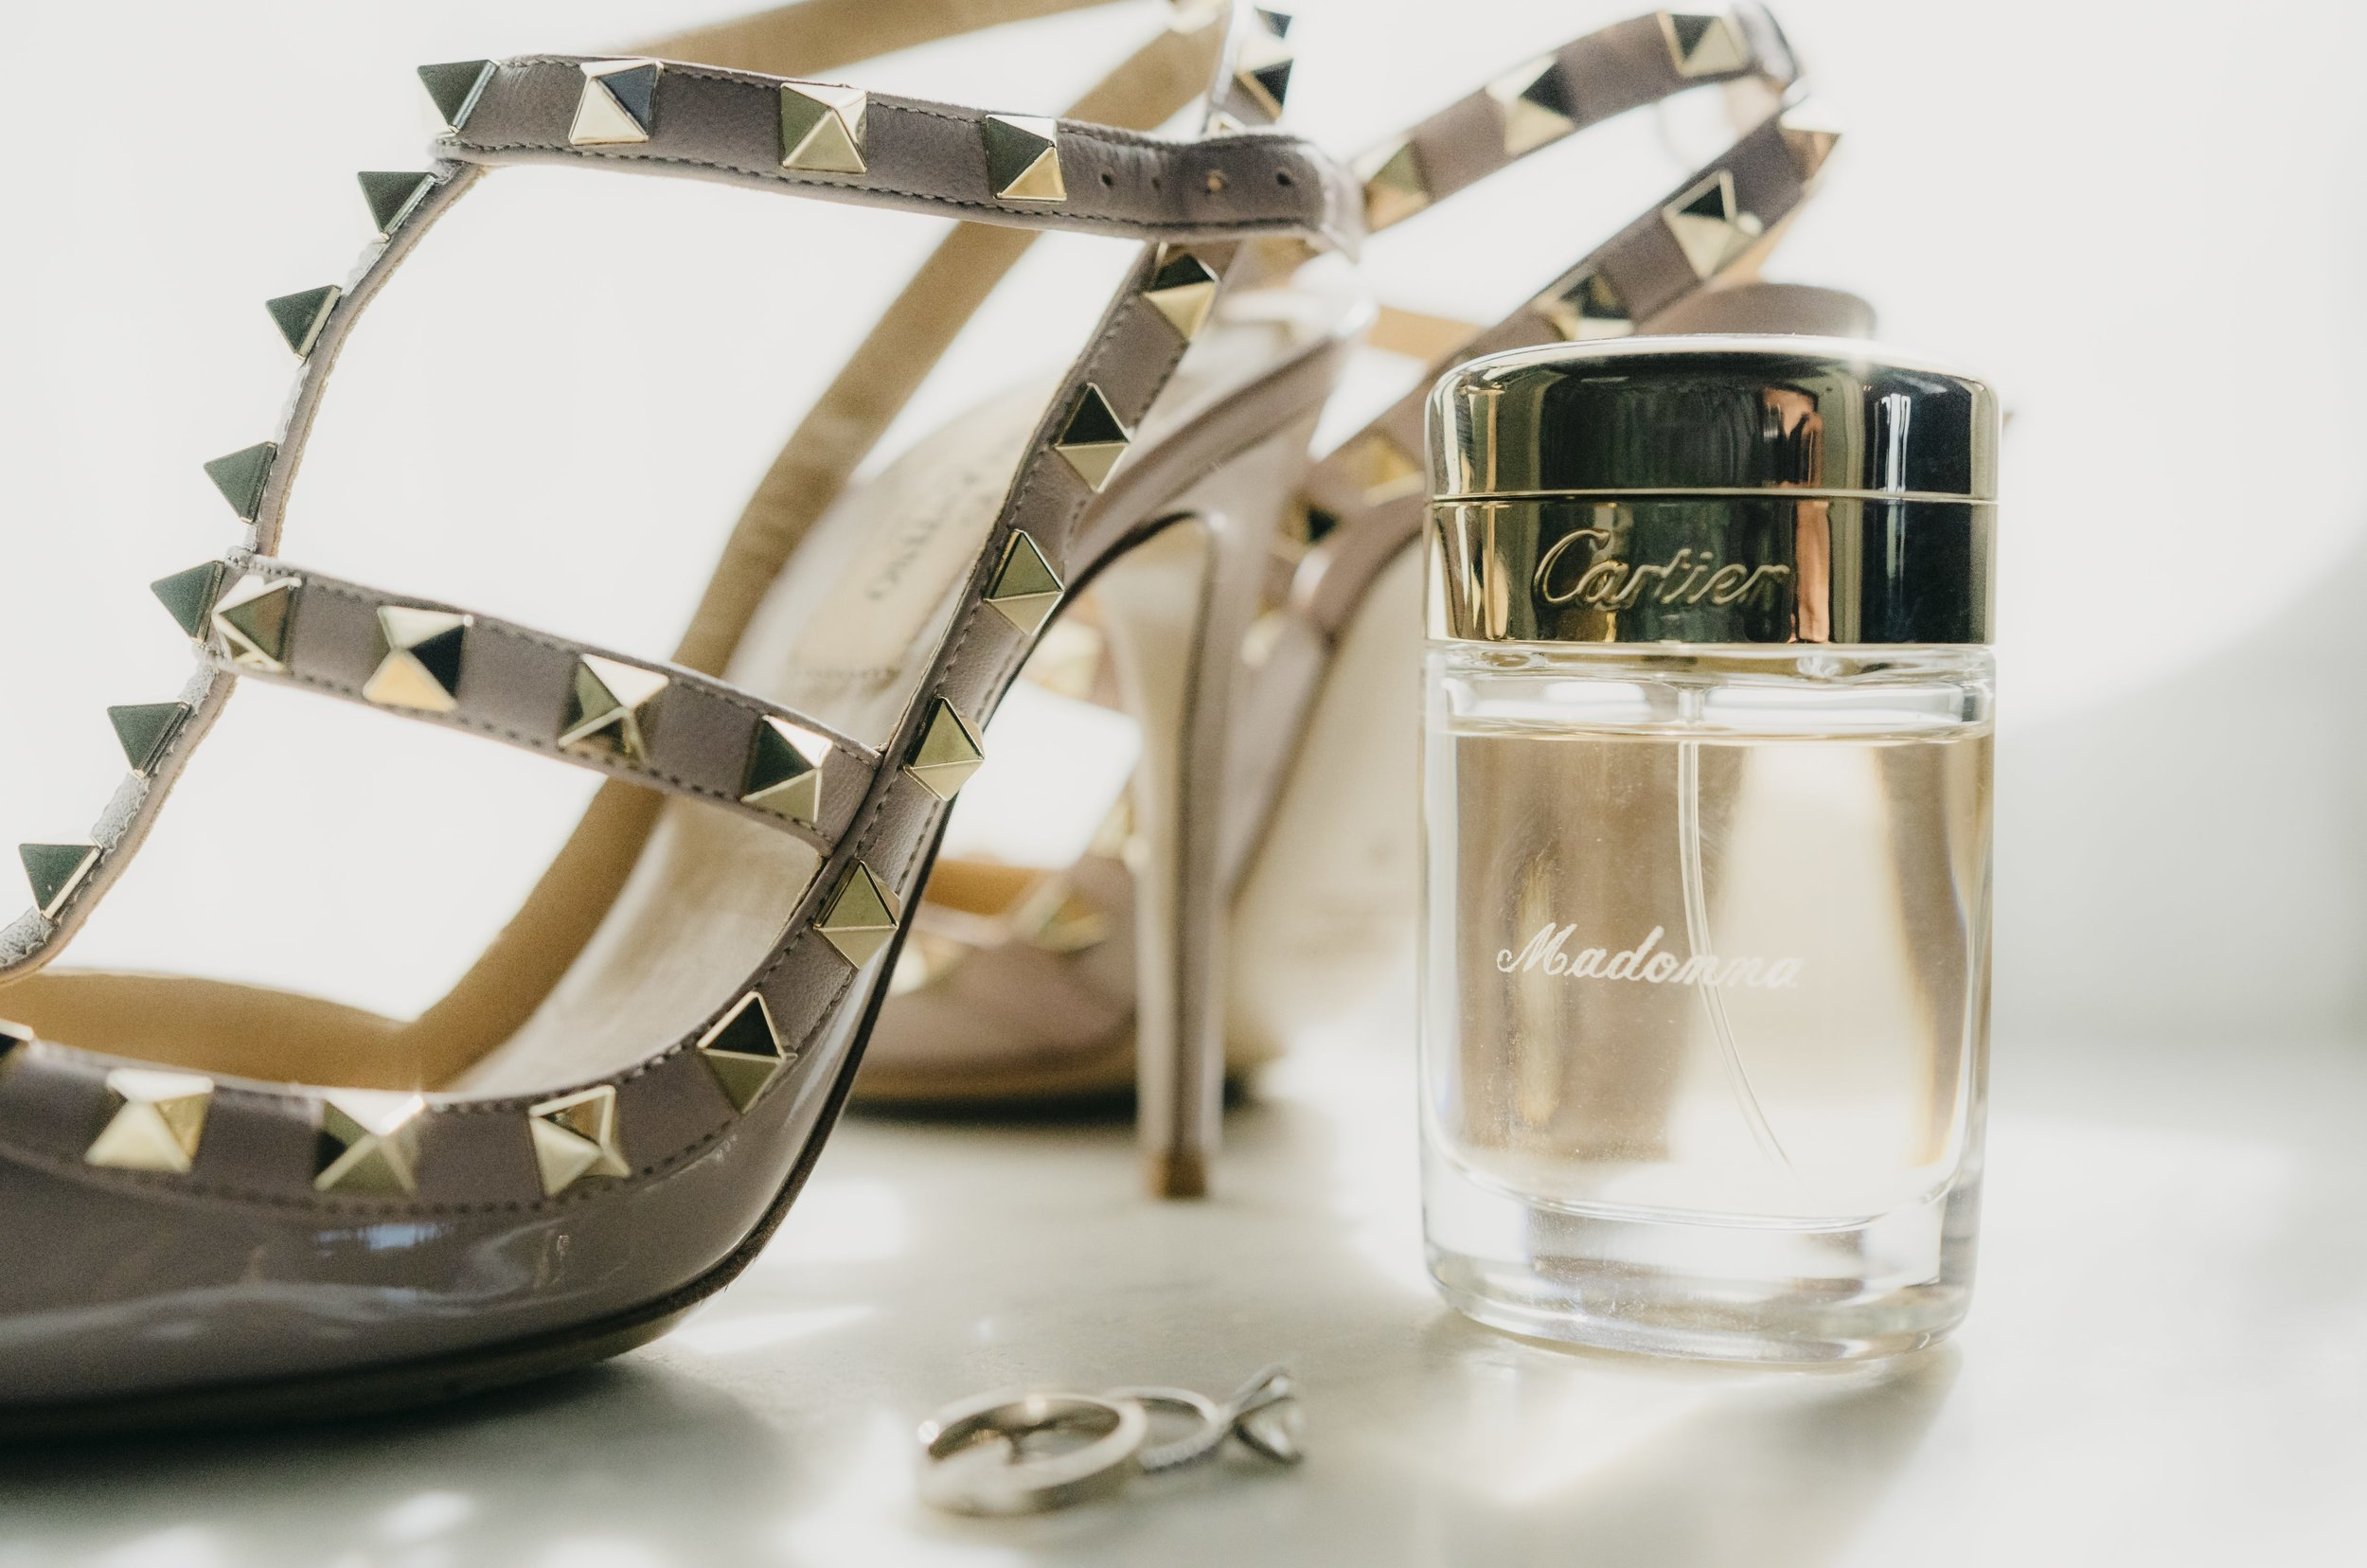 Wedding Photography - Something Old, Something New, Something Borrowed, Something Blue - Wedding bands photographed in front of a bottle of perfume and gold high heels.